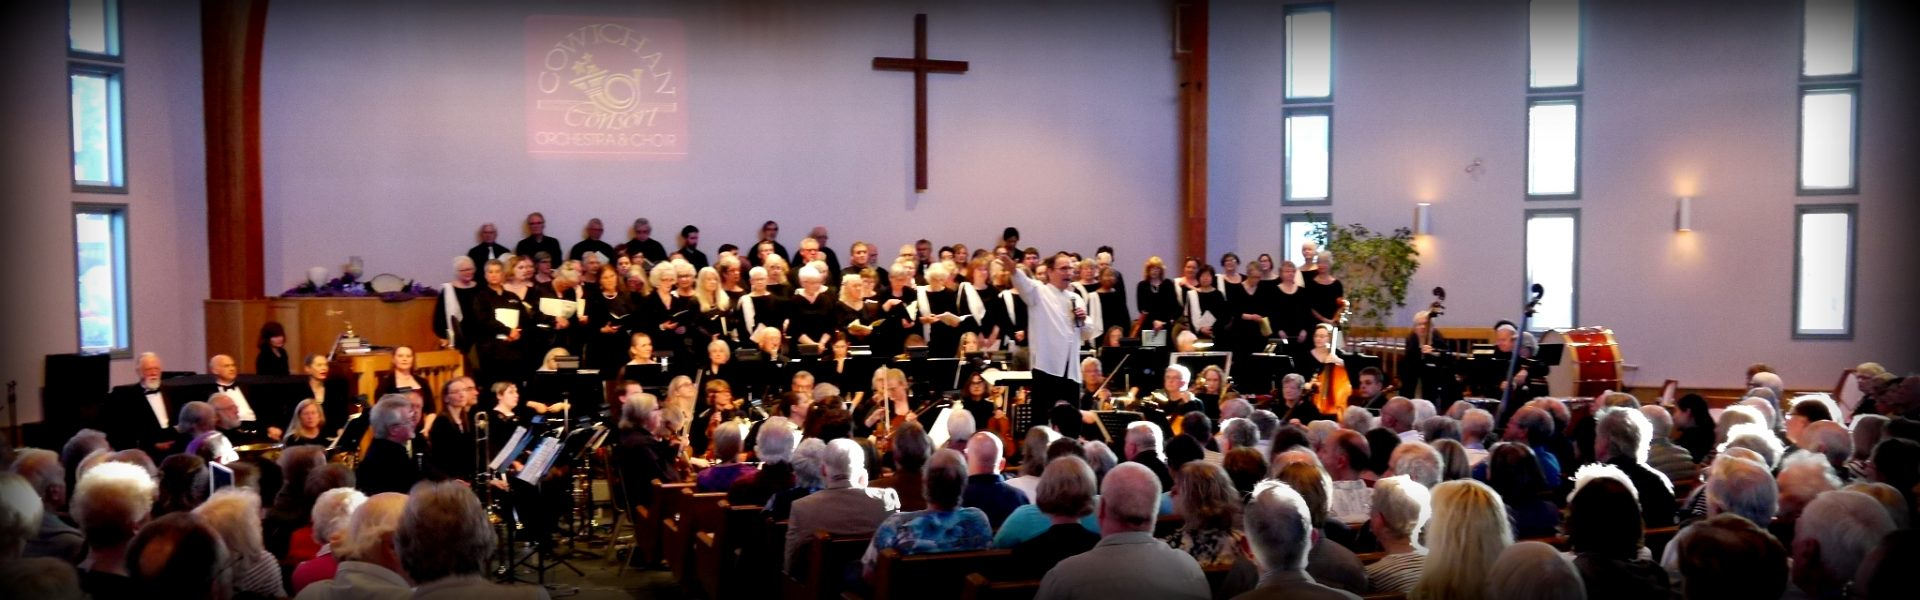 Cowichan Consort Orchestra and Choir